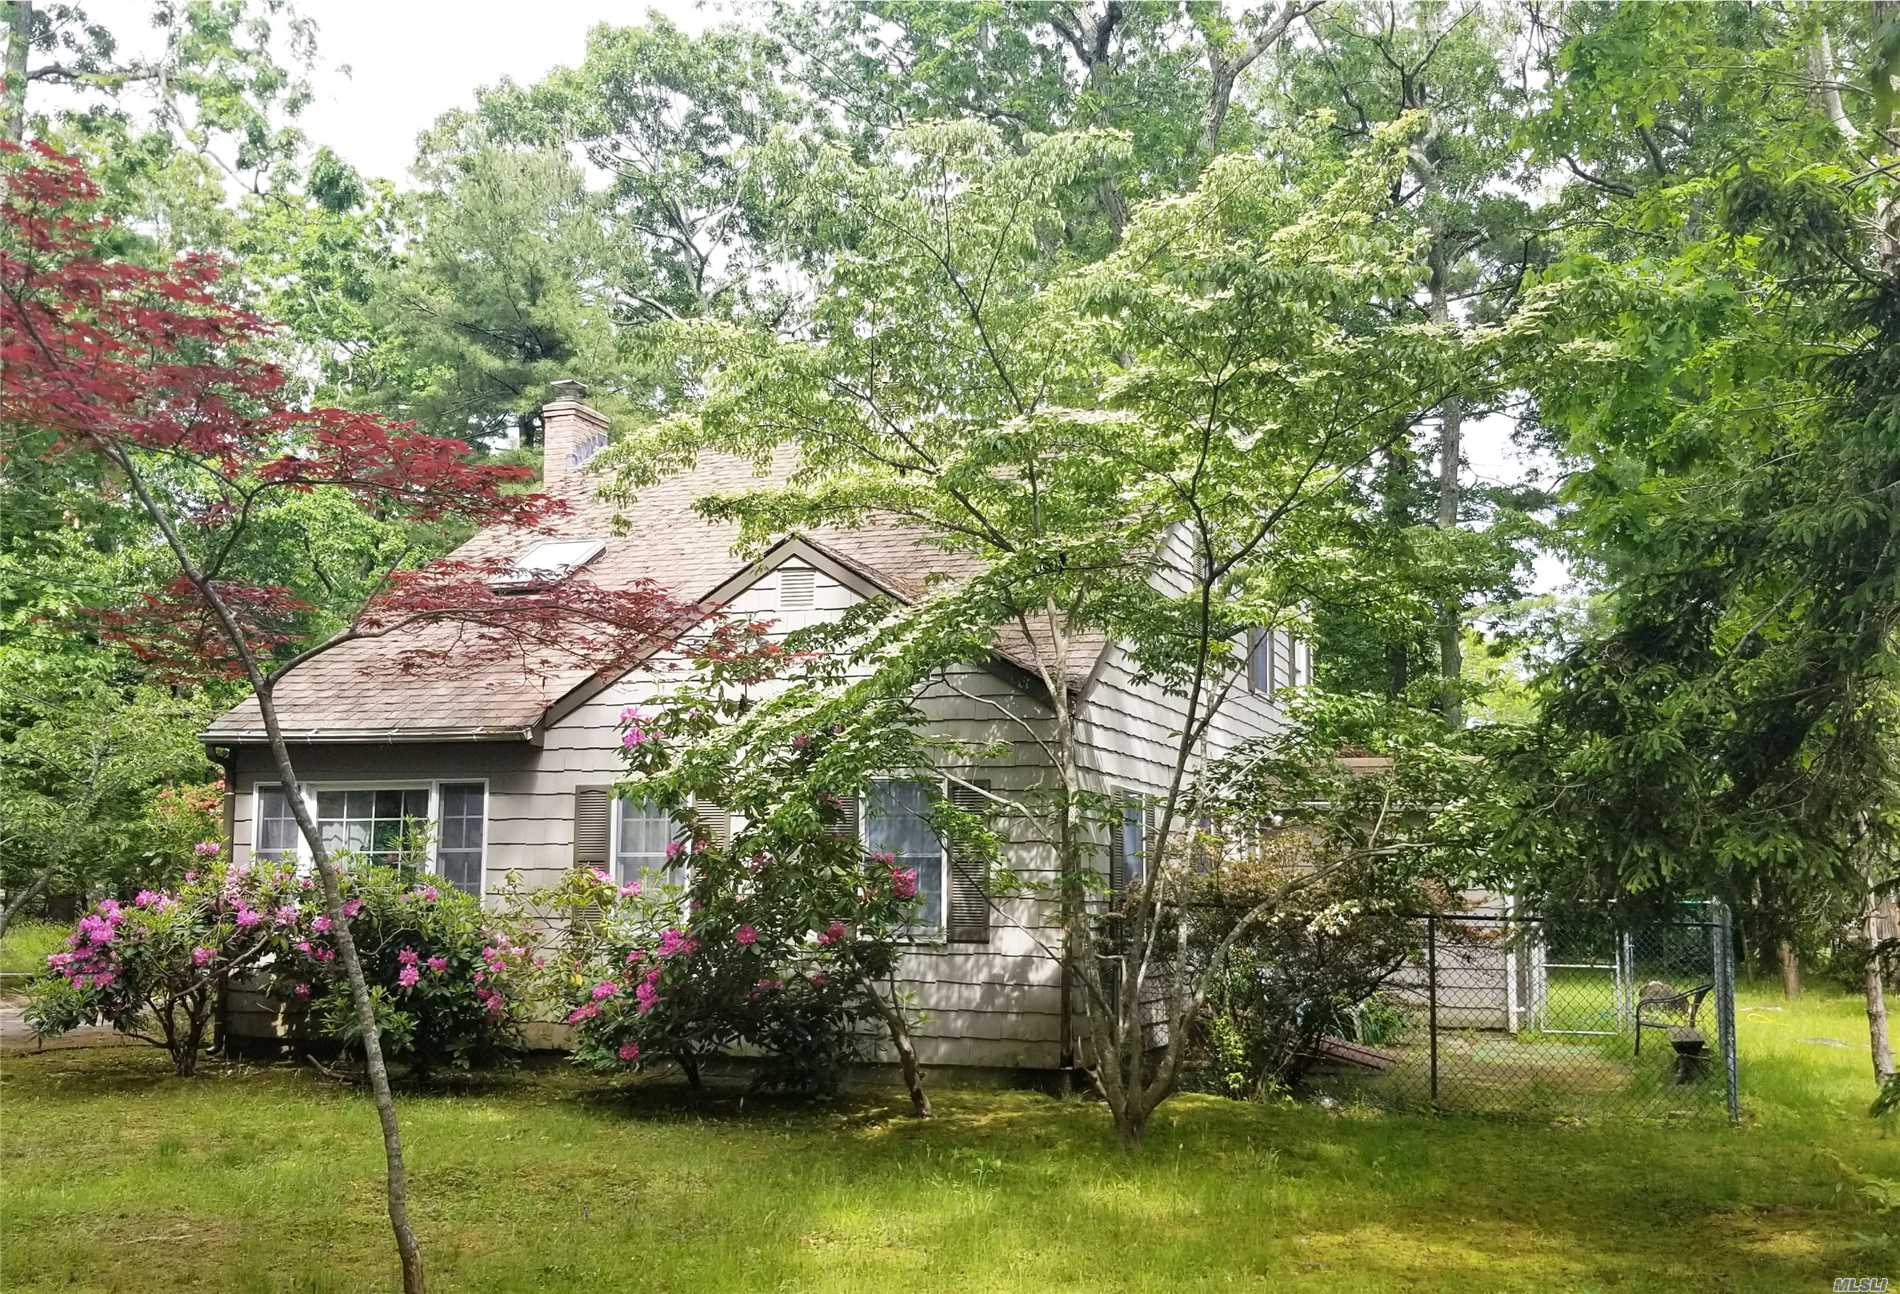 Come view this cute-as-a-button North Fork getaway, quietly tucked away in the woods near the east end of Great Hog Neck. There's a beautiful private beach for the Paradise Shores community at the end of the lane. Second floor master suite with library, formal dining room, CAC. Don't miss out!